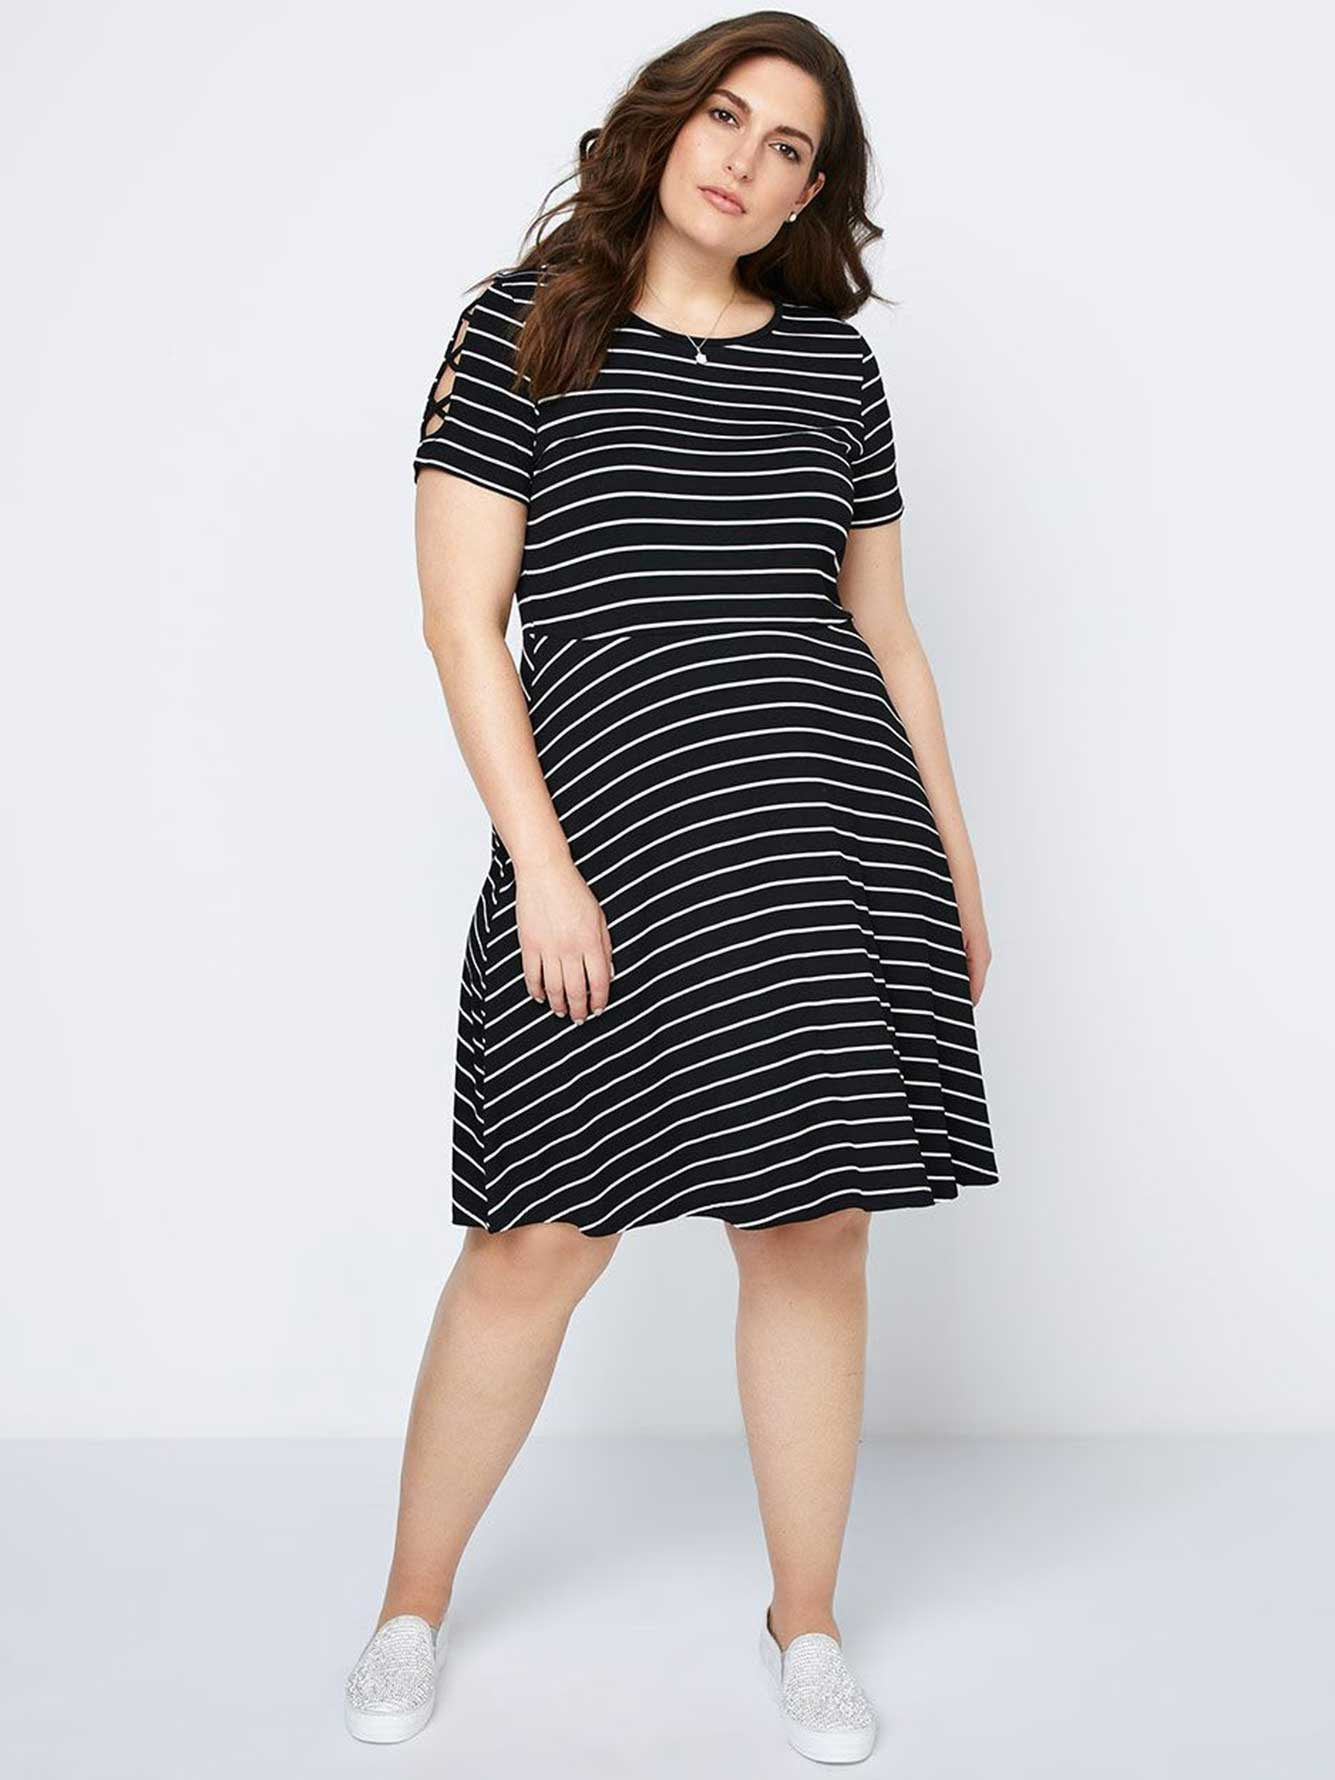 Striped Fit and Flare Dress - In Every Story  990a2b03d